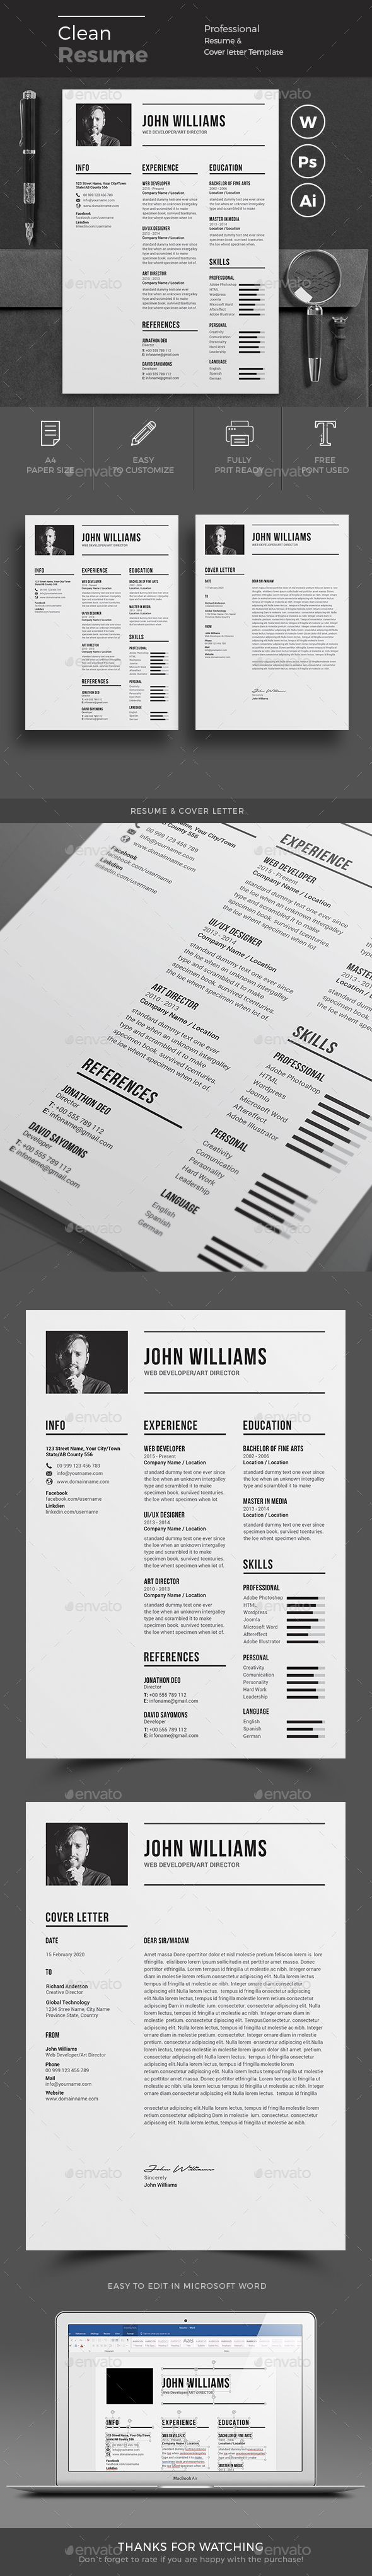 cosmetologist resume%0A Resume Template  Resume Builder  CV Template  Free Cover Letter  MS  Word on